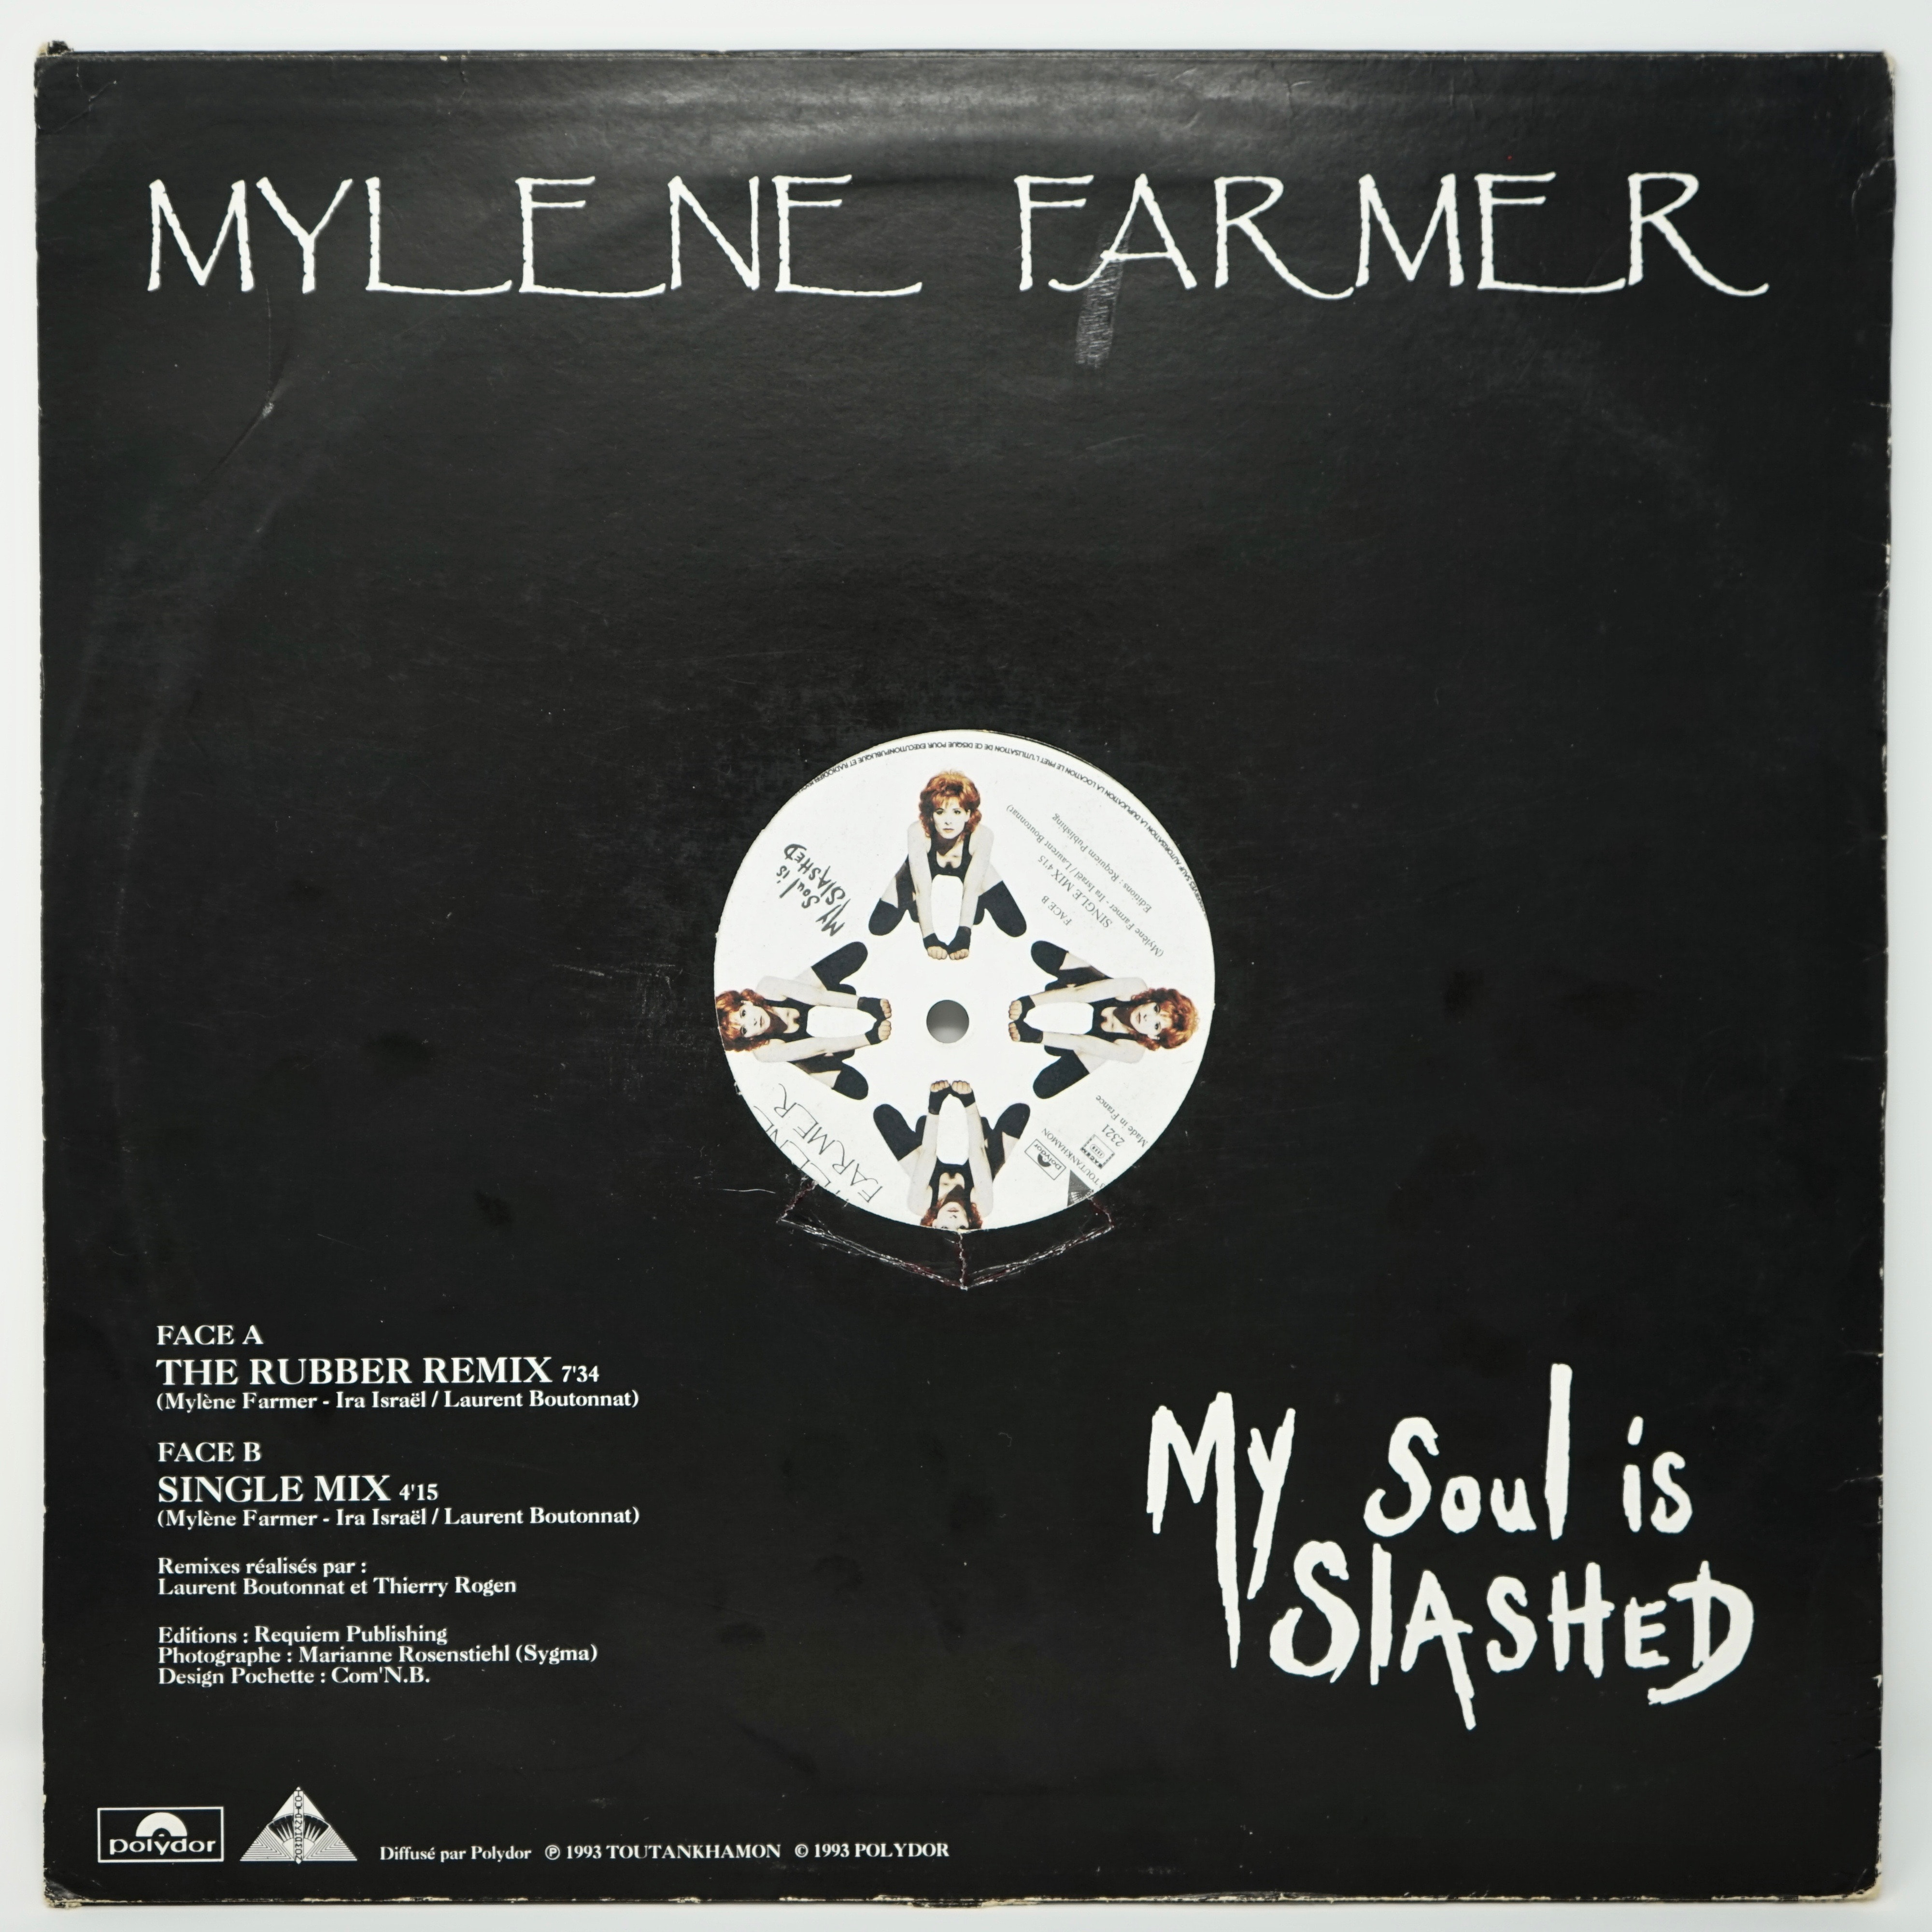 Vinyle Maxi Single de Mylène Farmer My Soul Is Slashed Verso